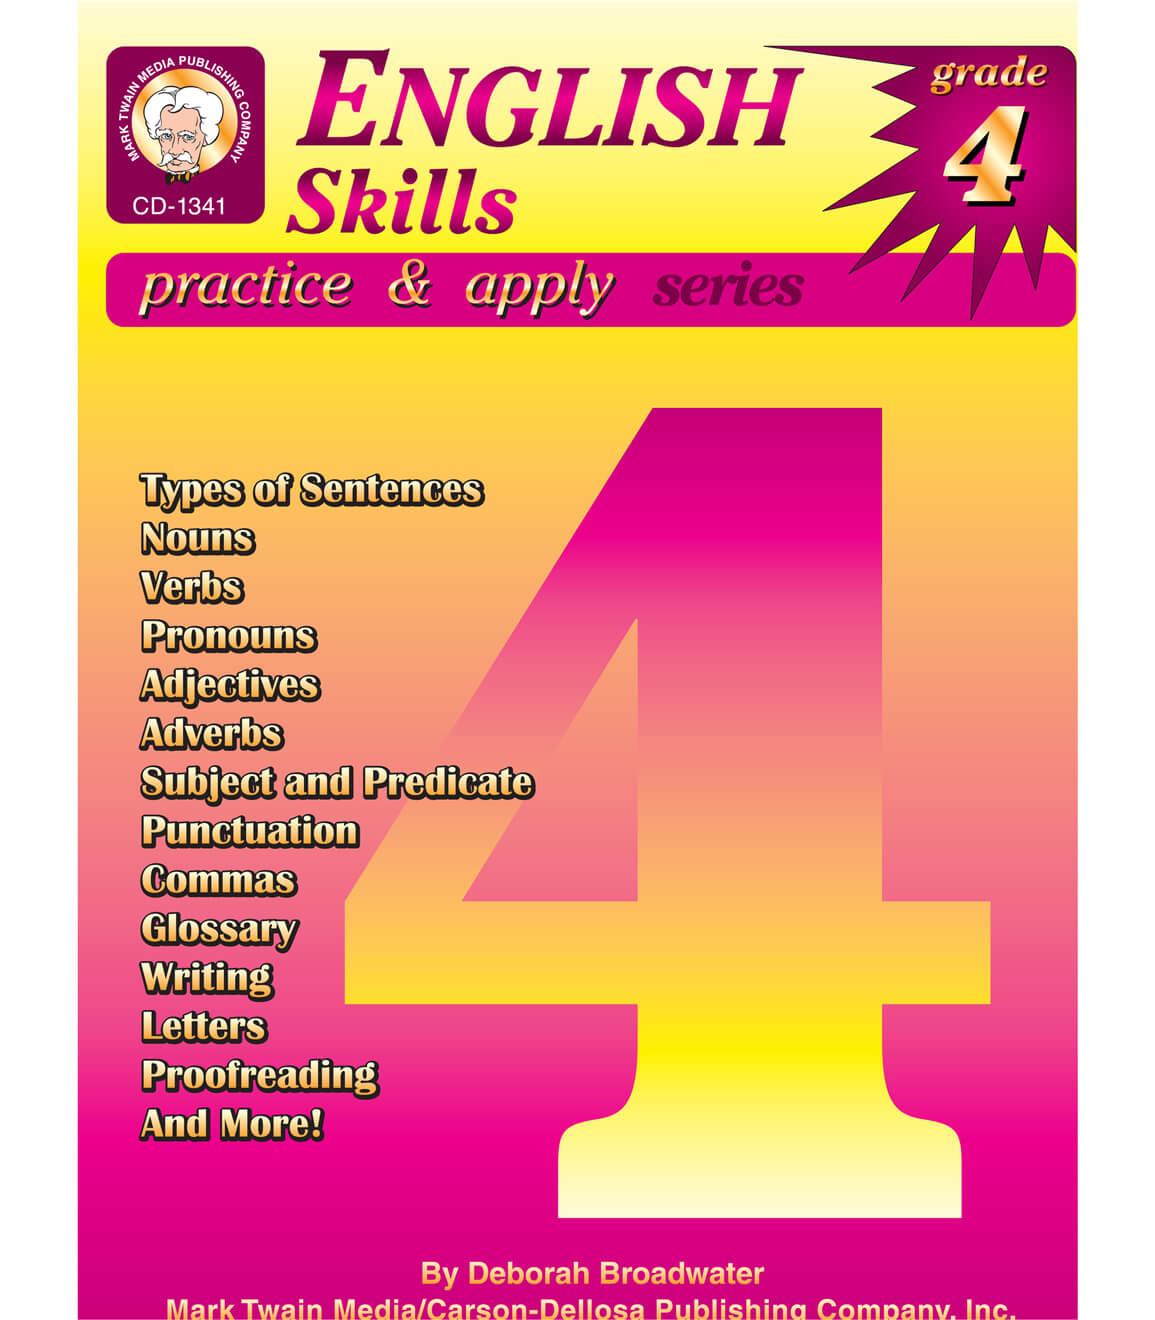 English Skills Resource Book Product Image